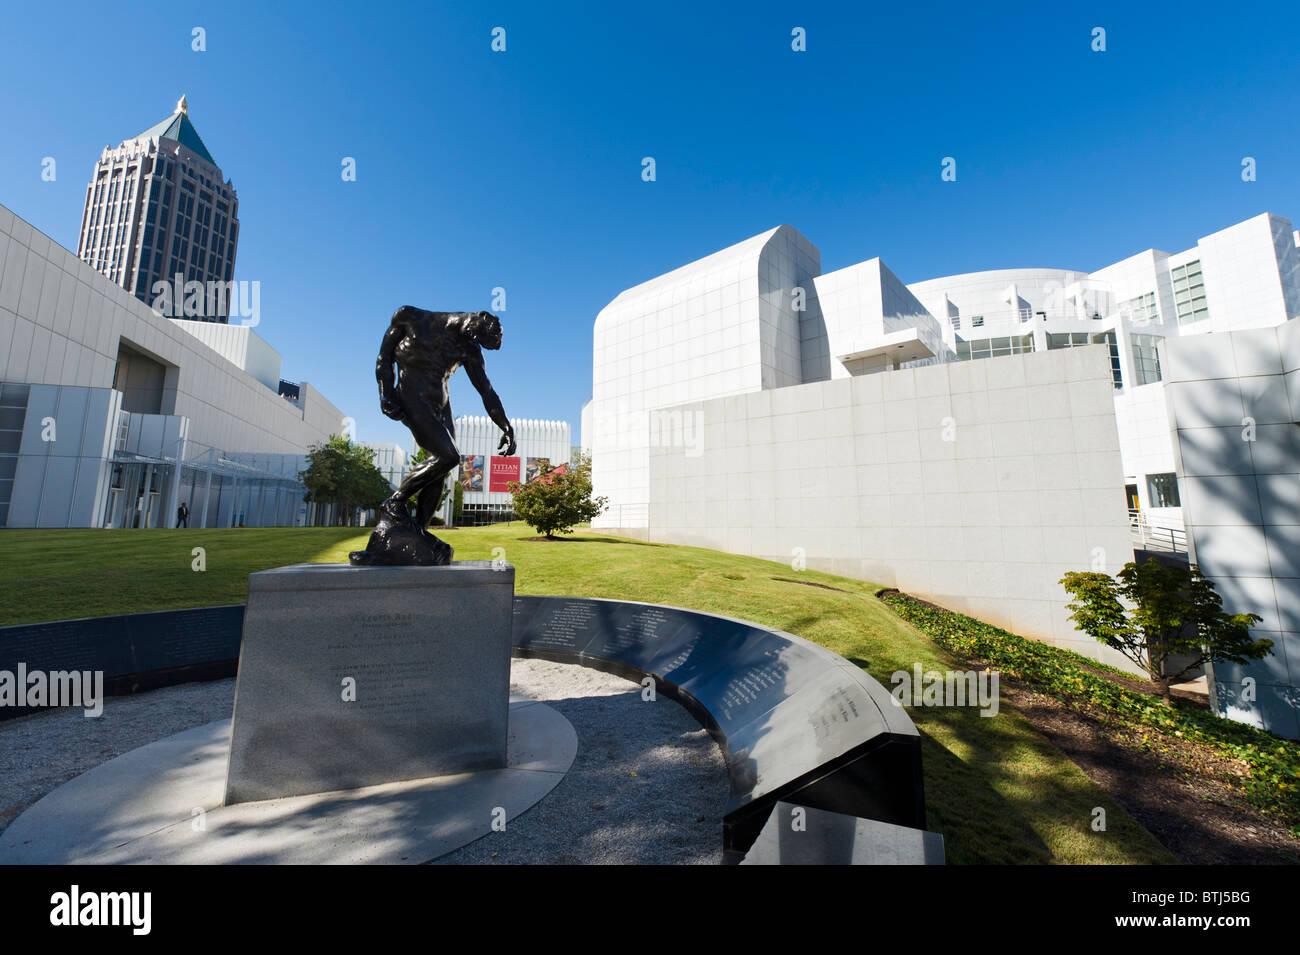 The High Museum of Art with Rodin sculpture 'The Shade' in the foreground, Woodruff Arts Center, Midtown - Stock Image